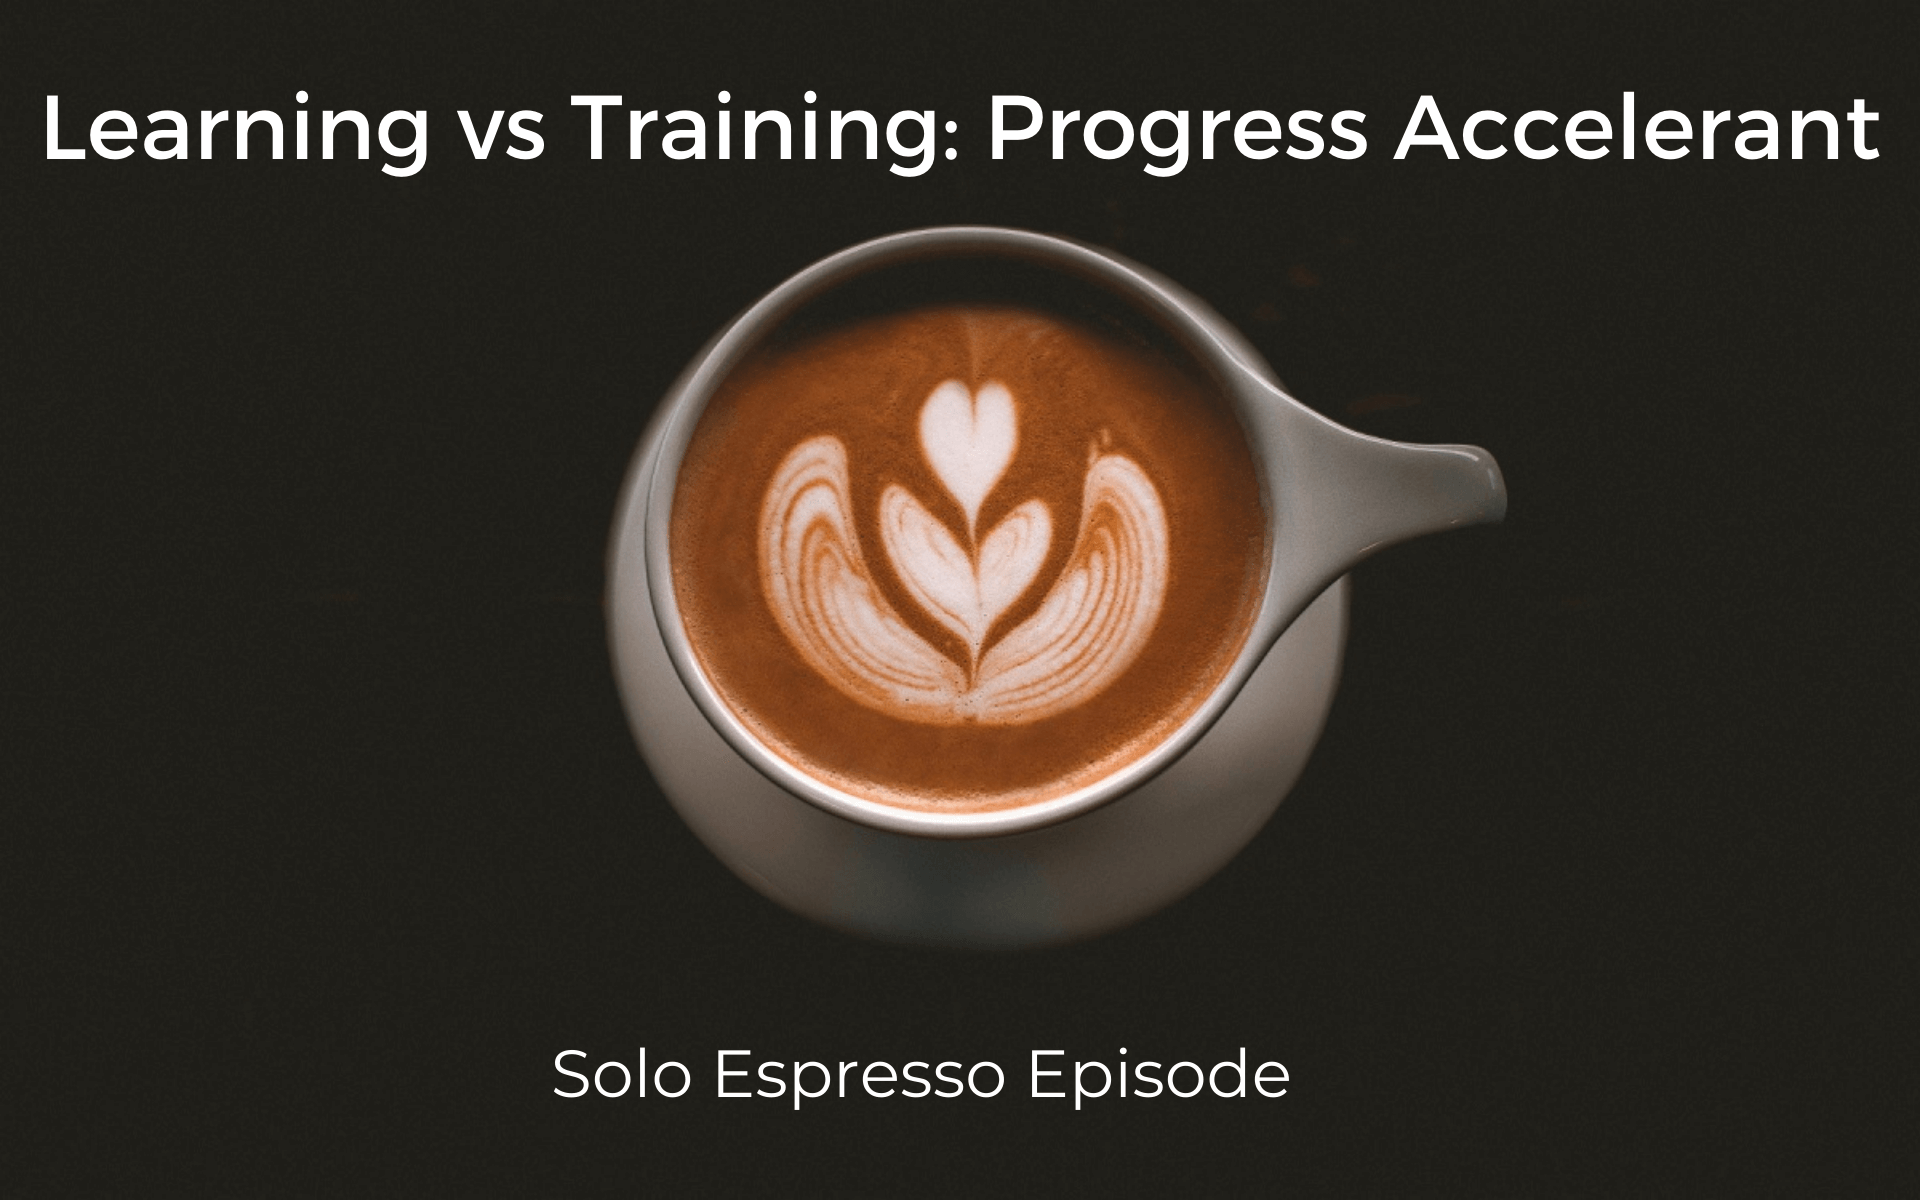 Learning vs Training: Progress Accelerant (Dealing with Goliath Podcast #025)